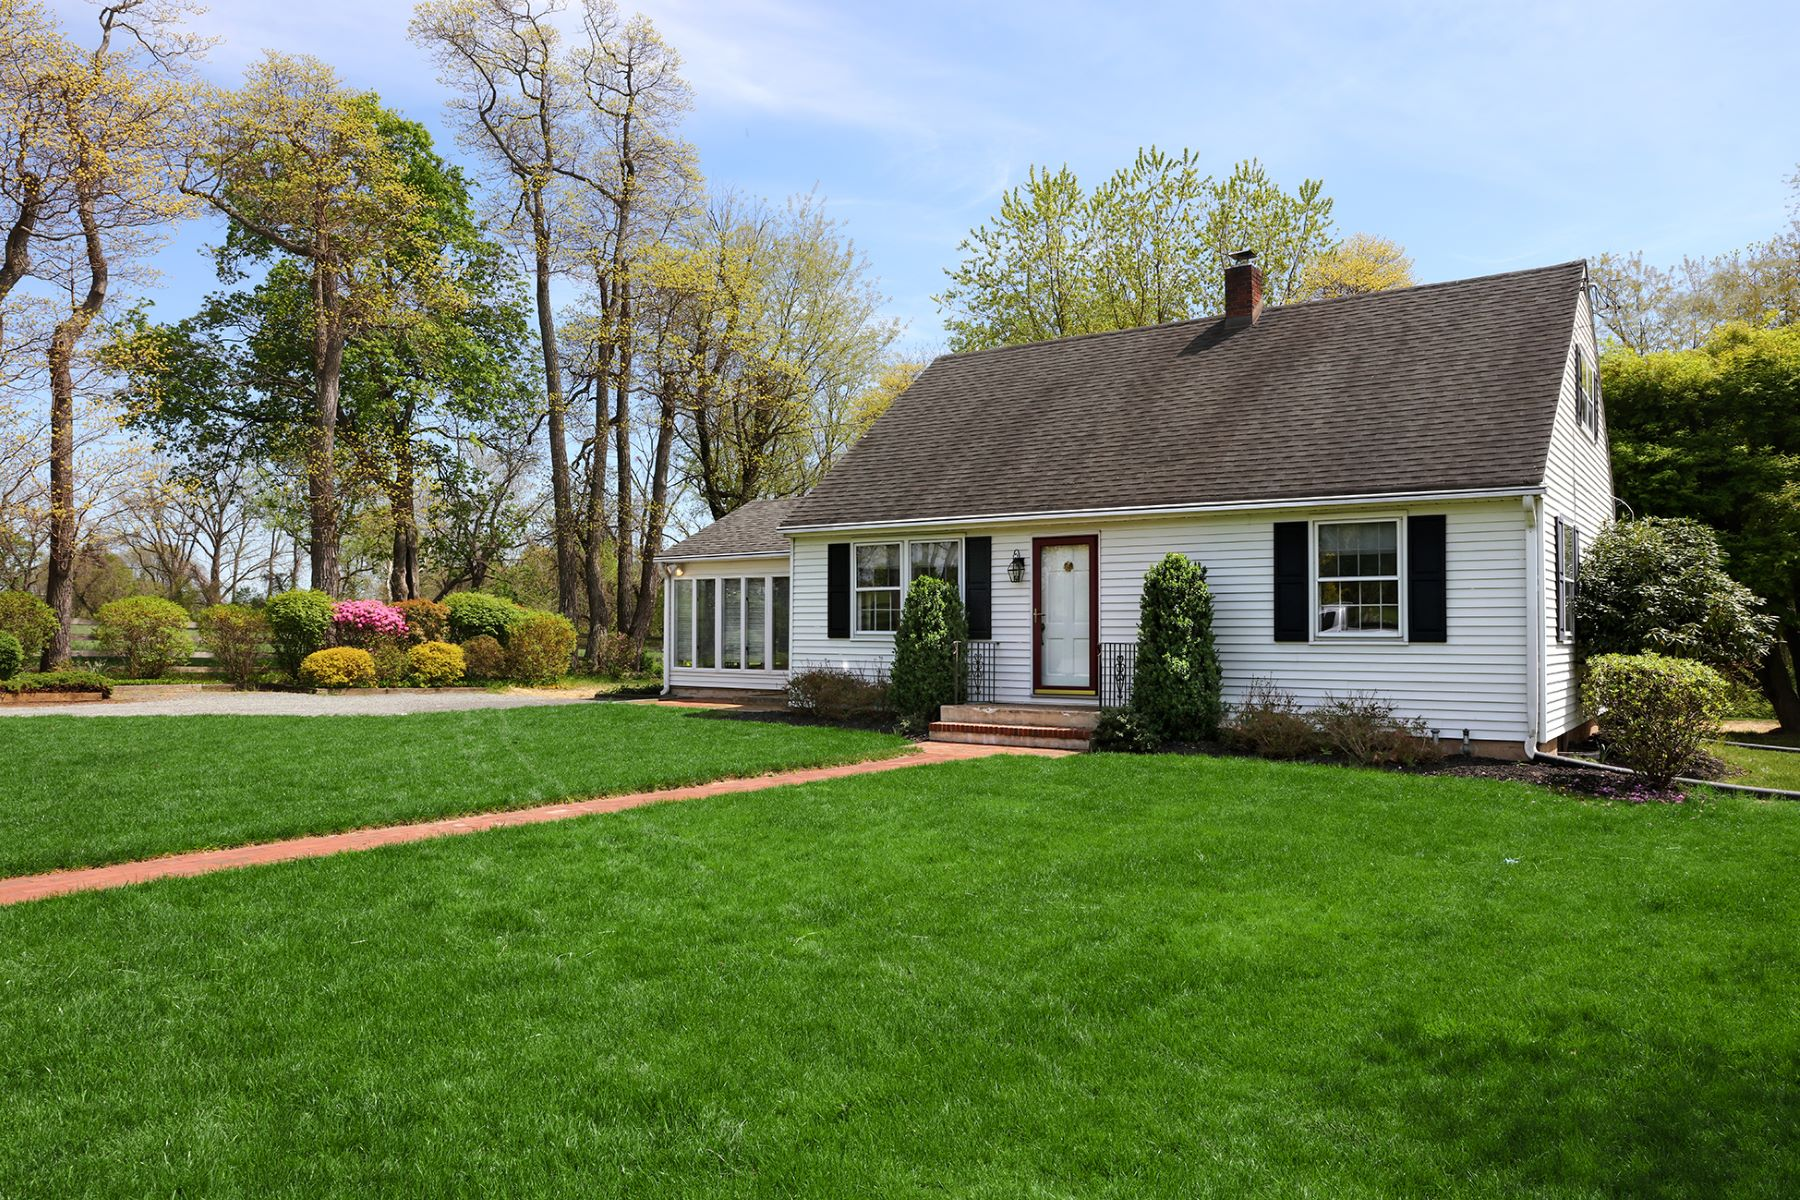 Single Family Homes for Sale at The Perfect Beginning 37 Patterson Avenue, Titusville, New Jersey 08560 United States